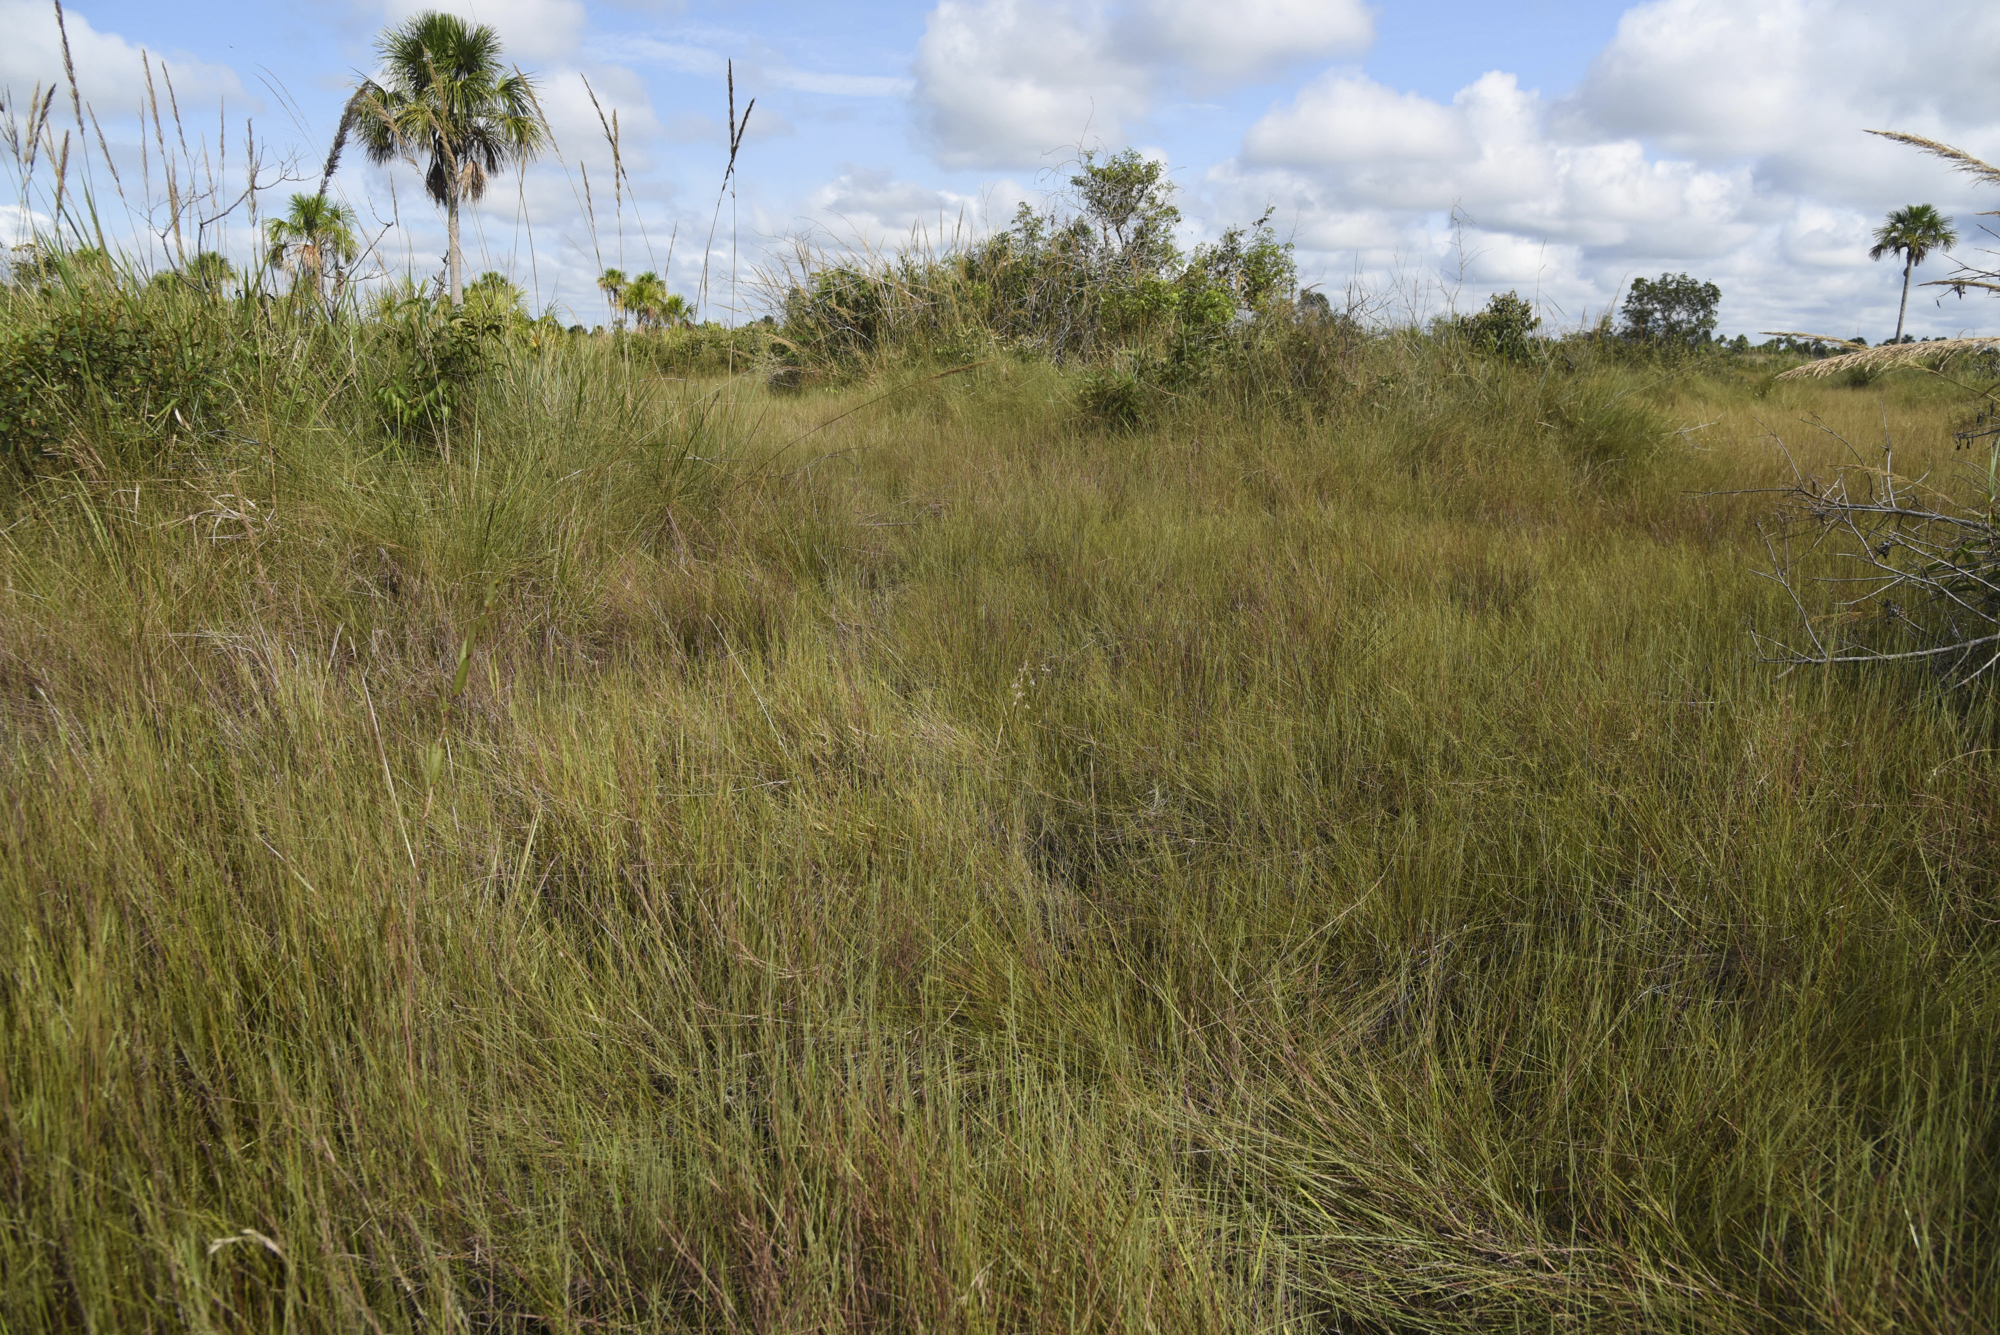 Pampas de Heath only occupies a small corner of the Peruvian Amazon basin, however, in Bolivia and Brazil it makes up a far greater land mass.